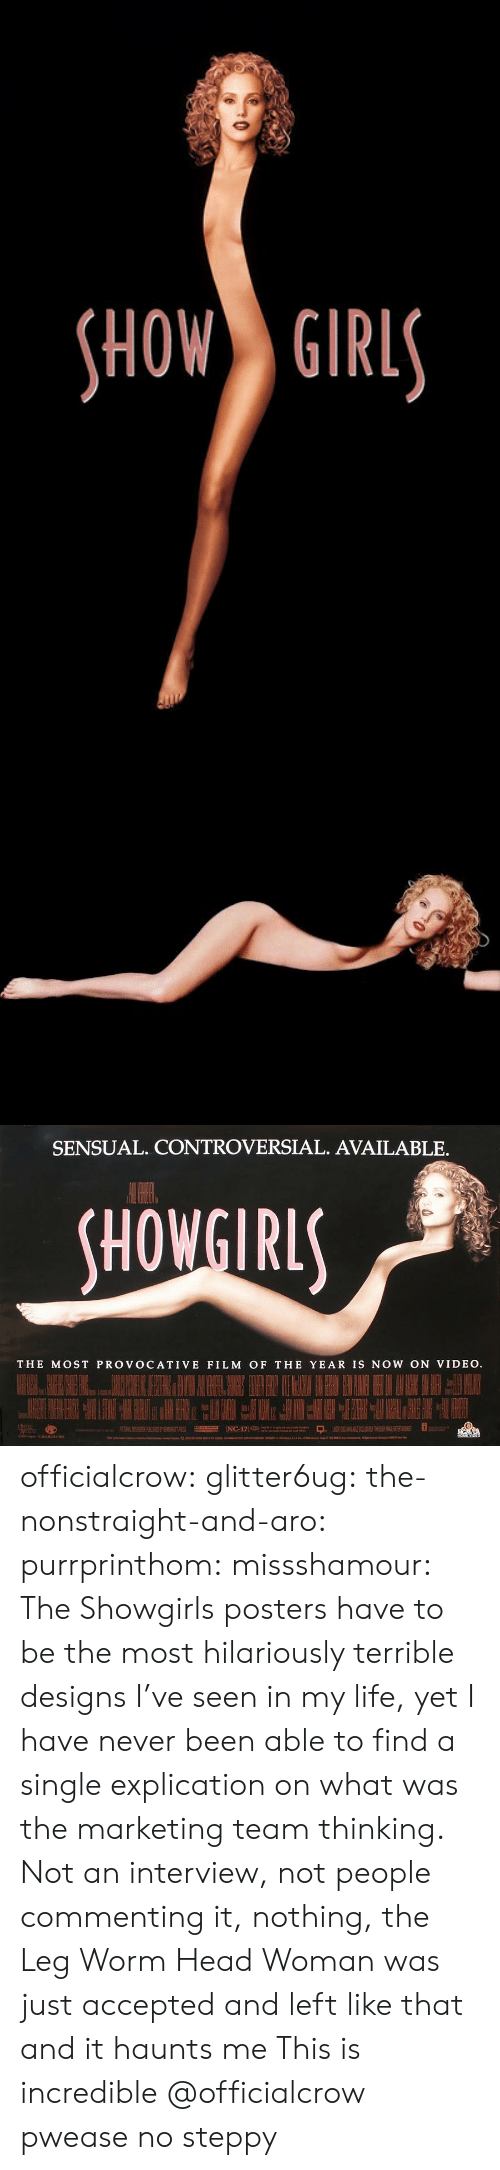 People Commenting: HOW GIRL   SENSUAL. CONTROVERSIAL. AVAILABLE.  HOWGIRL  THE MOST PROVOCATIVE FILM OF THE YEAR IS NOW ON VIDEO officialcrow:  glitter6ug:  the-nonstraight-and-aro:  purrprinthom:  missshamour:  The Showgirls posters have to be the most hilariously terrible designs I've seen in my life, yet I have never been able to find a single explication on what was the marketing team thinking. Not an interview, not people commenting it, nothing, the Leg Worm Head Woman was just accepted and left like that and it haunts me  This is incredible   @officialcrow  pwease no steppy